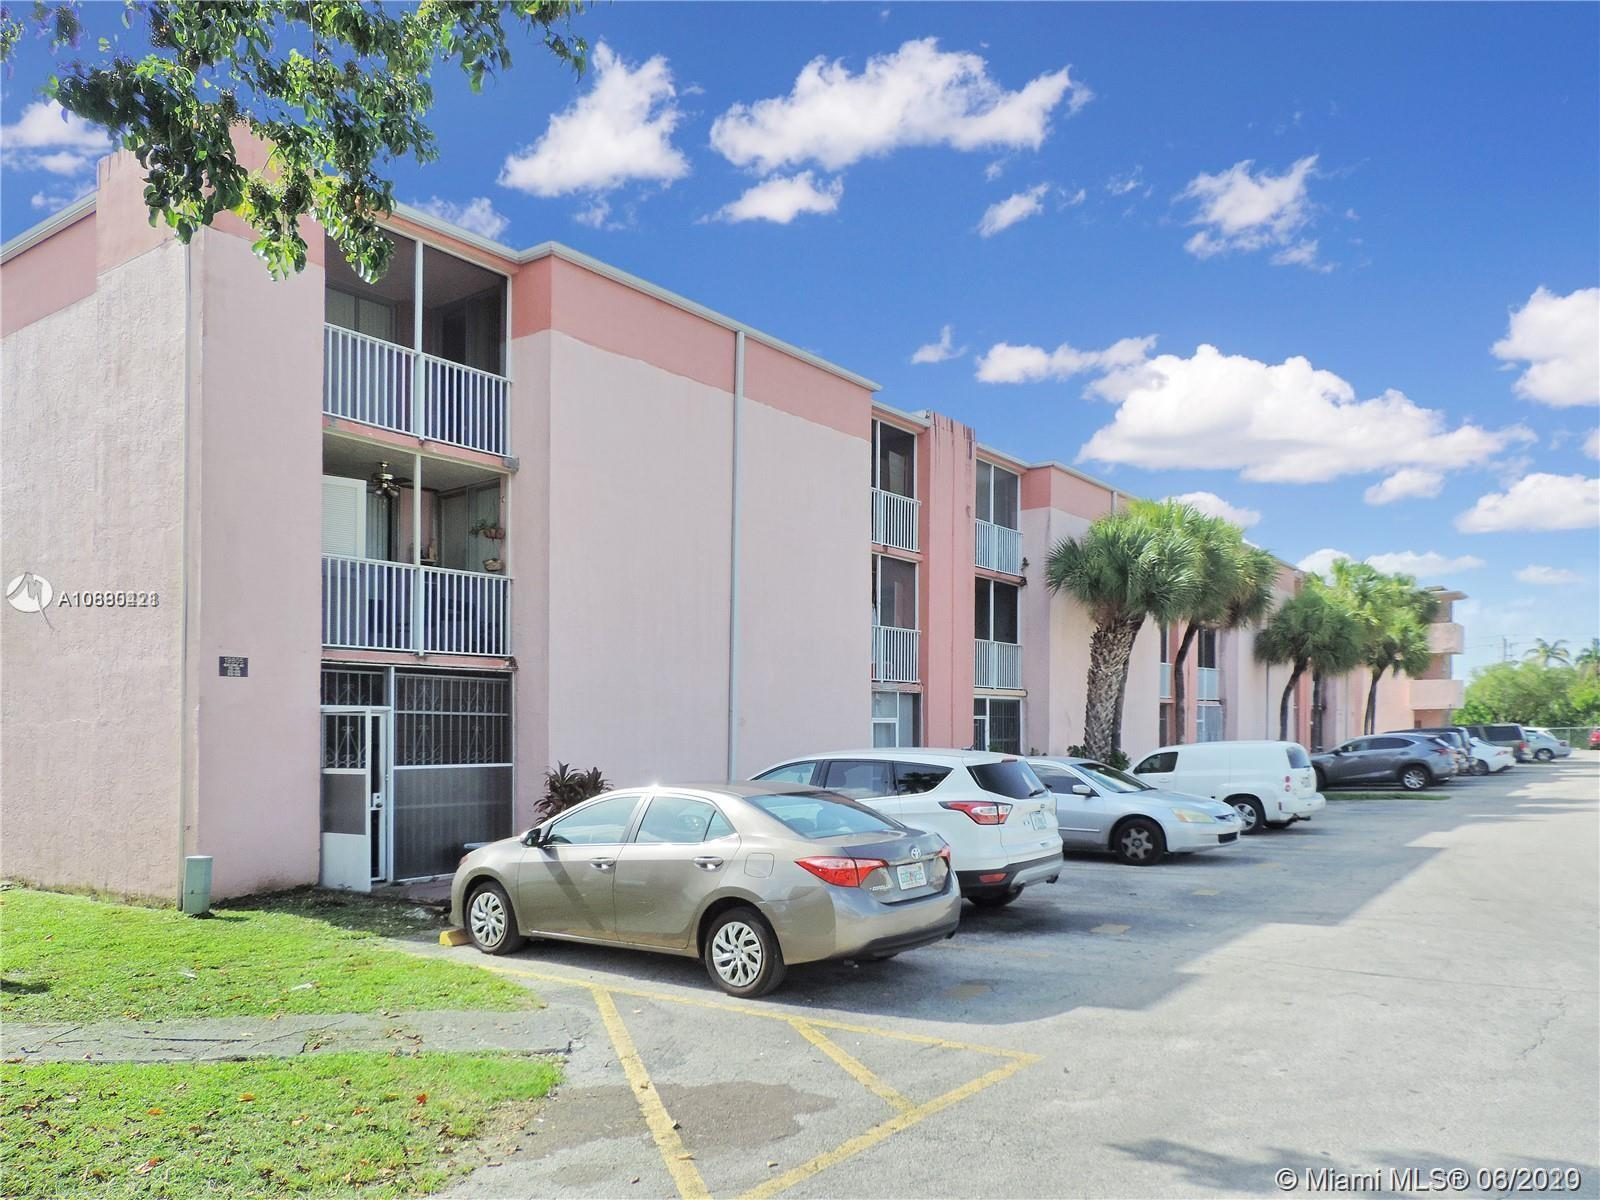 Great Portfolio sale of 10 Units locate close to Southland Mall with easy access to US1 and Florida Turnpike. All unit are 2 Bedroom 2 Baths 800 SQ FT and rented between $1,200.00 to $1,250.00 can be increase rent around 8% return. Some with a 1-year lease others Month to Month. 100% occupied for good tenants and high demand rental area. All unit are in average to good condition.